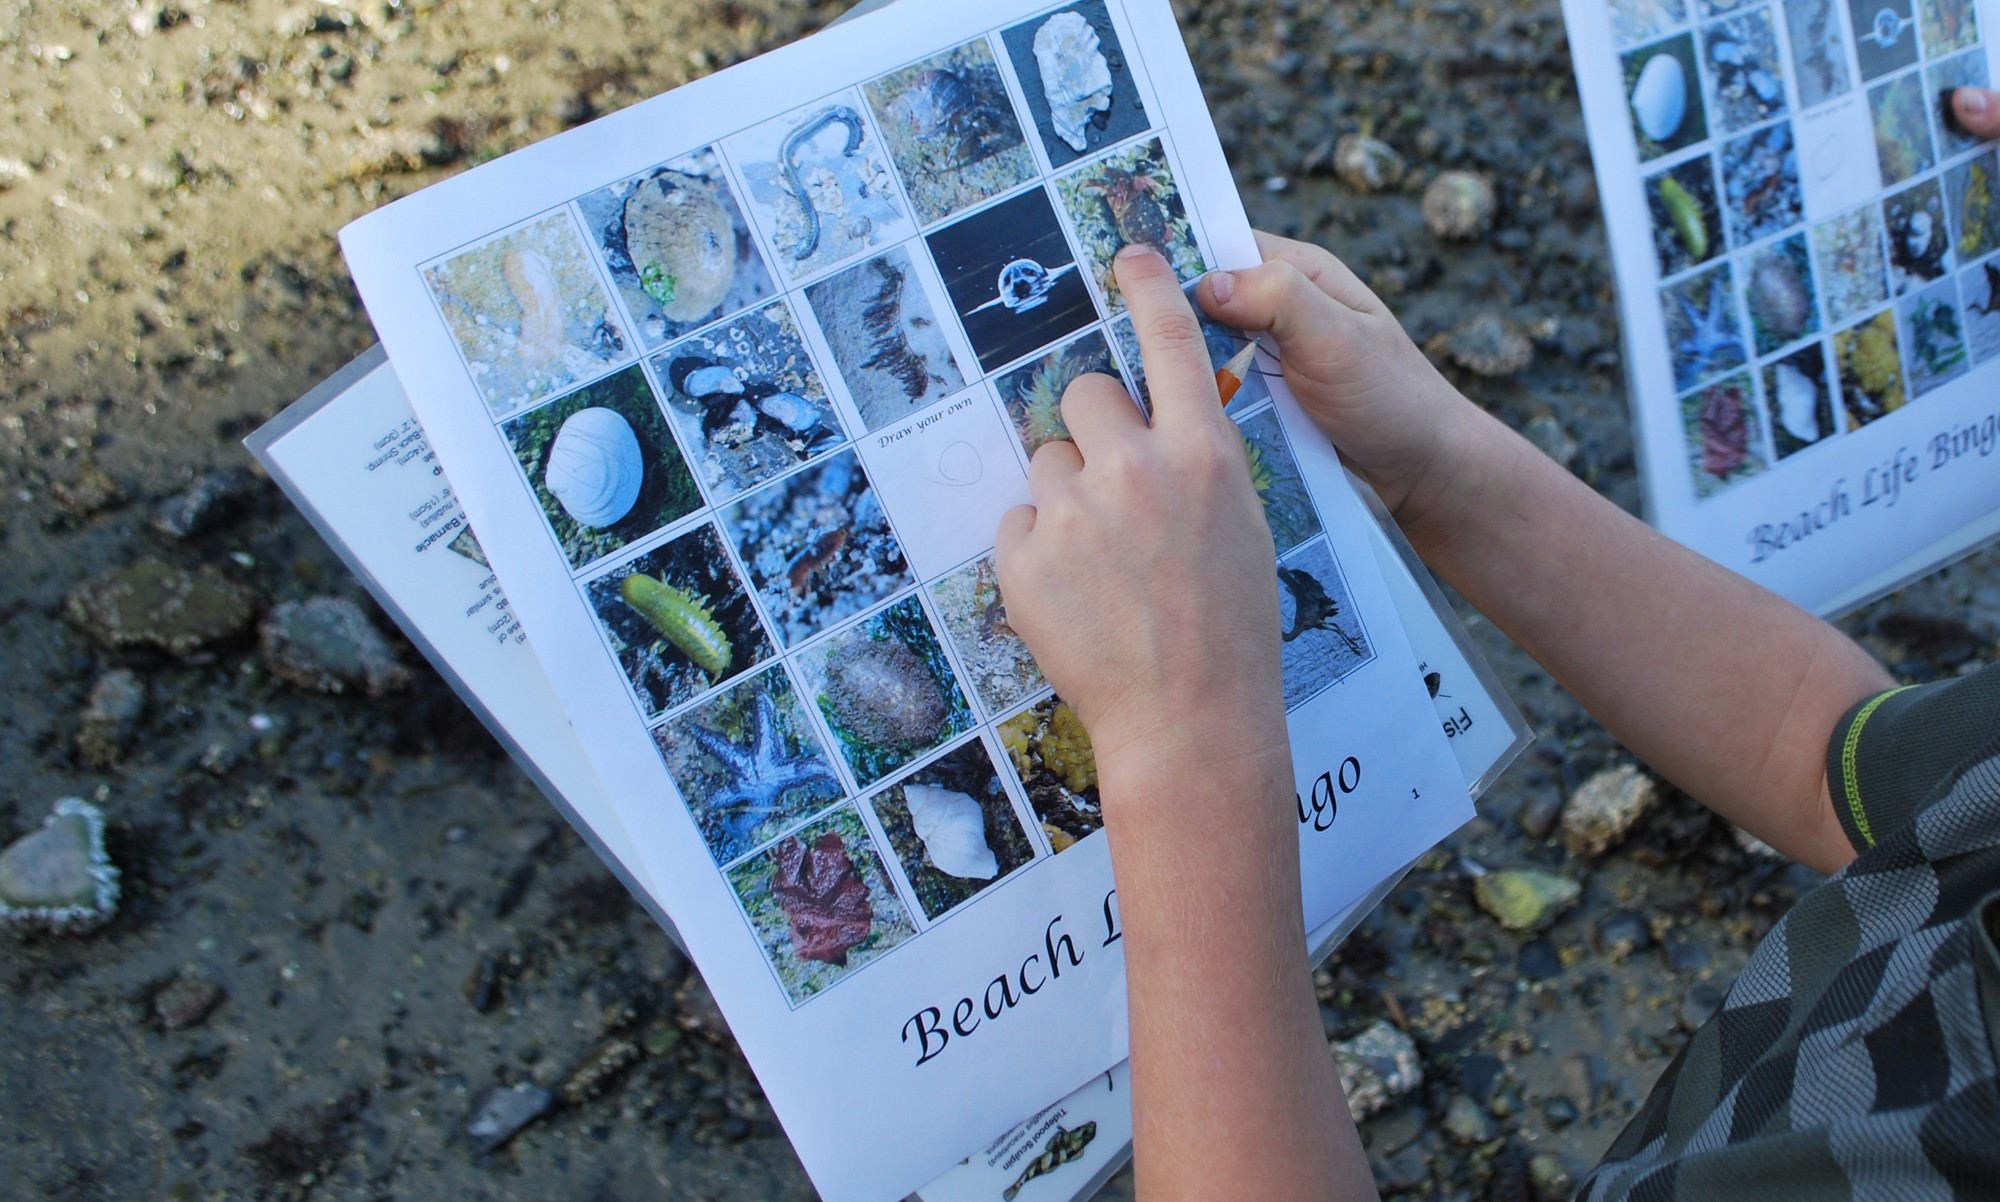 Student points to a picture on a beach bingo card.